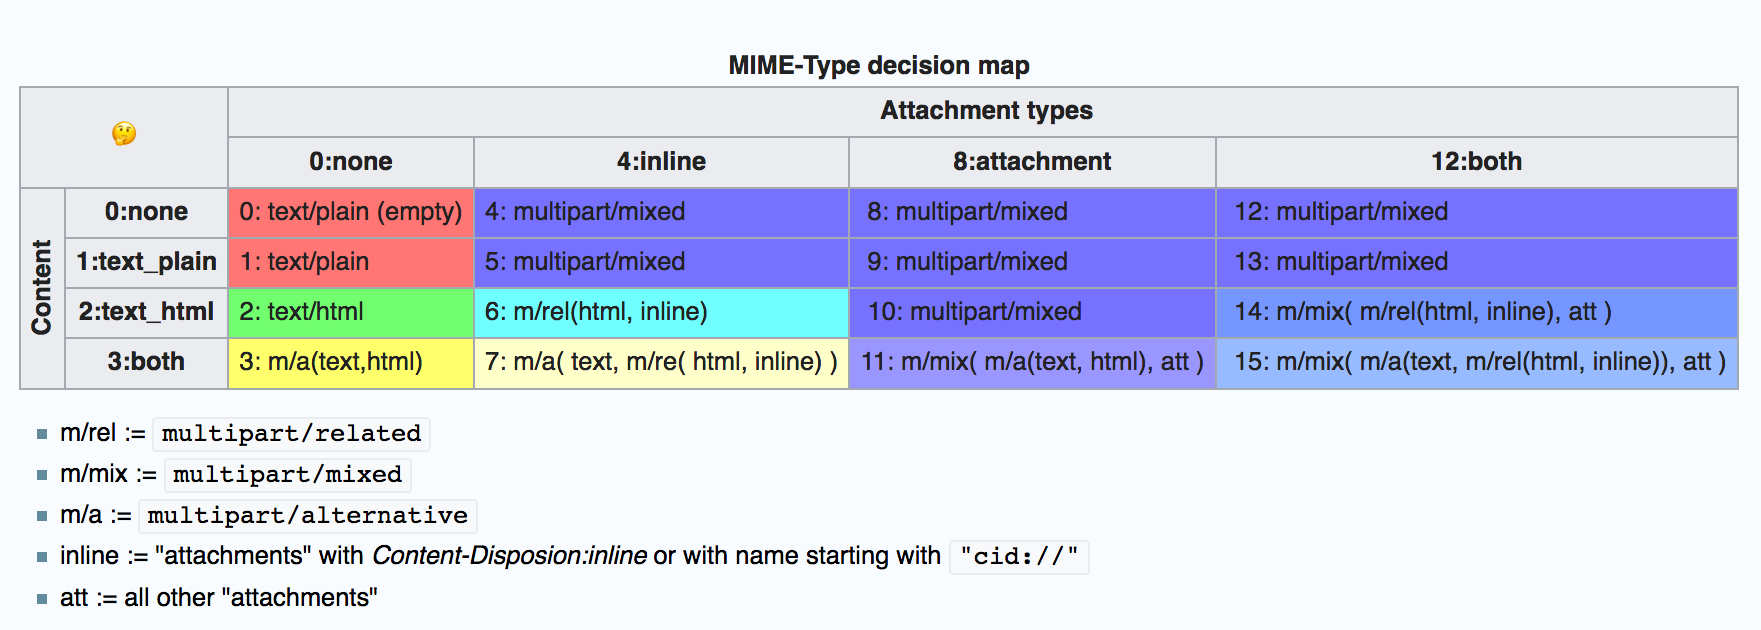 MIME-Type decision matrix